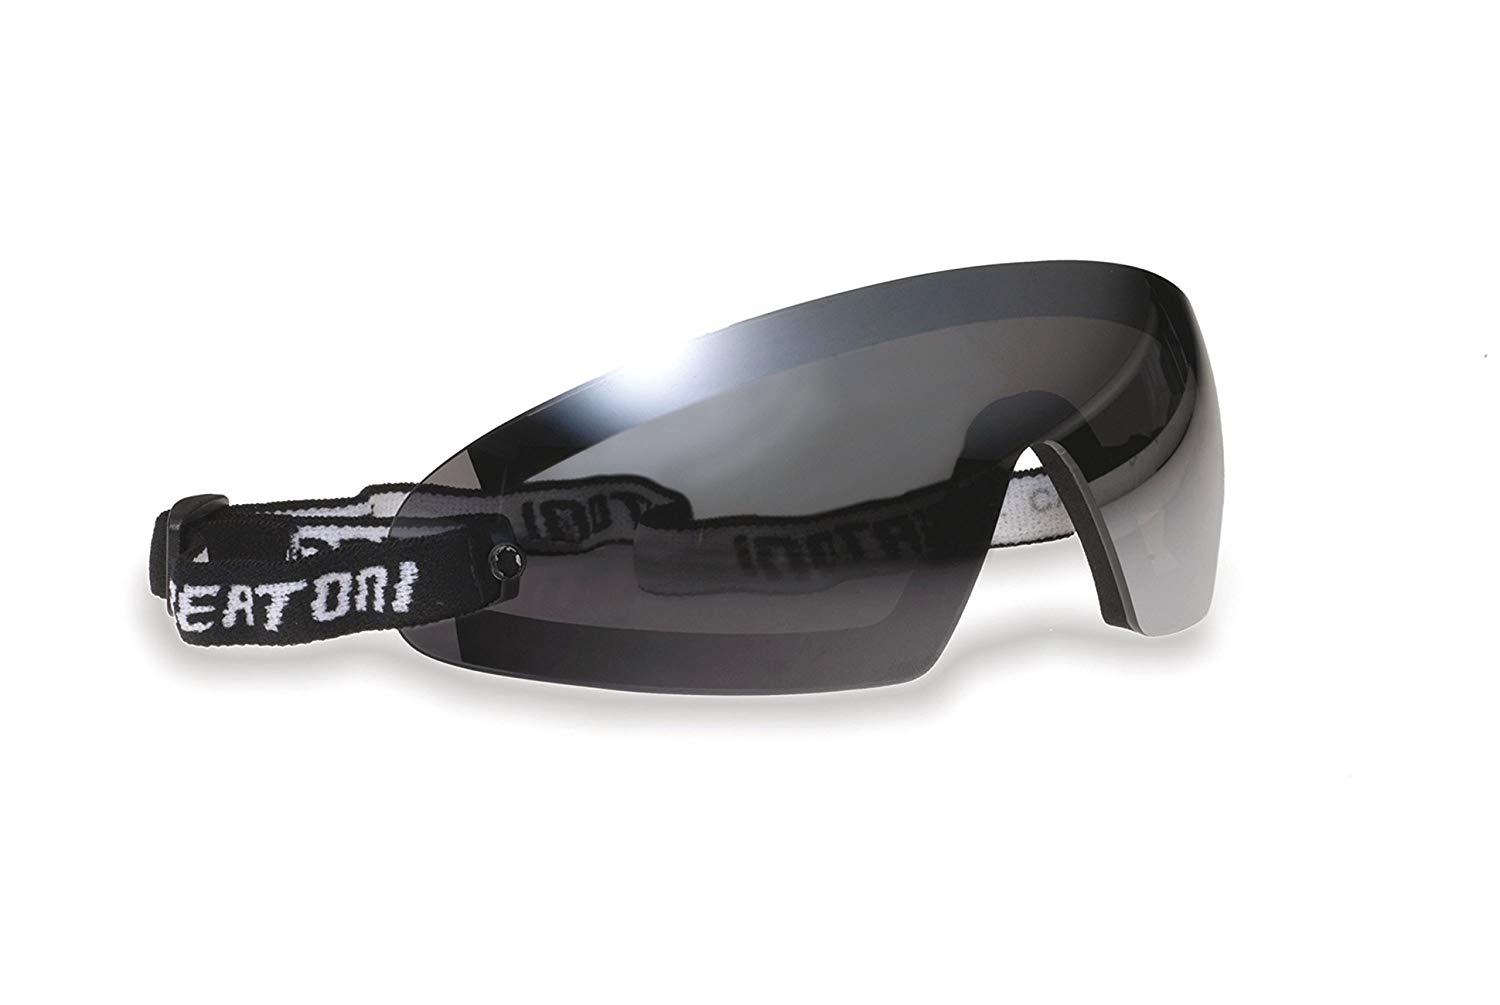 a326853bc79 Get Quotations · Bertoni Sports Glasses with Clip for Prescription Lenses  for Motorcycle MTB Ski Skydiving Cycling Softair Extreme